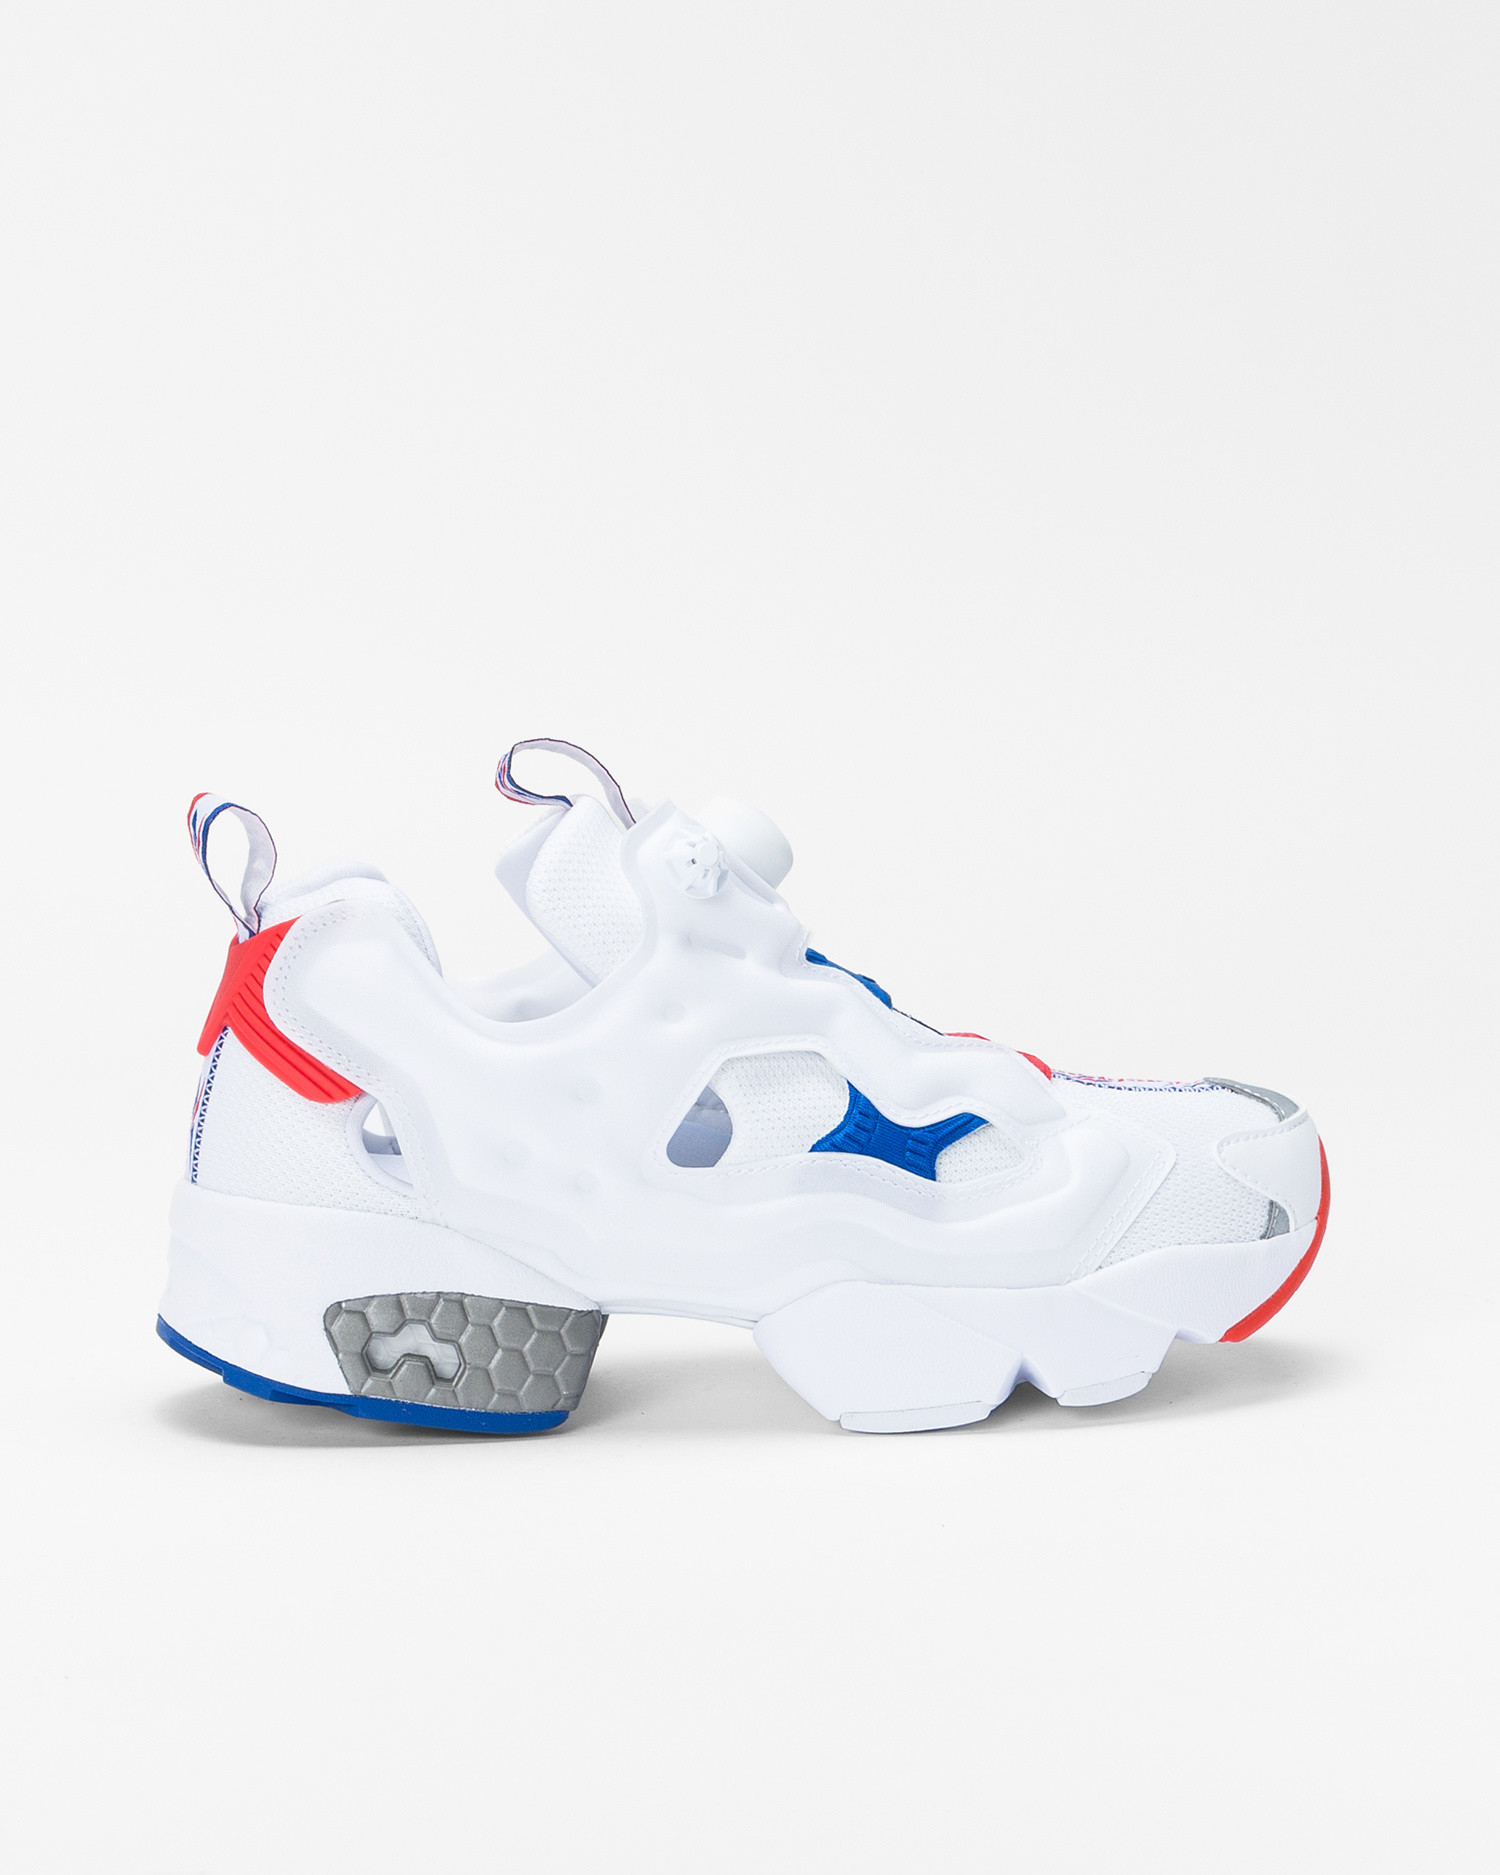 Reebok Instapump Fury OG white/red/blue